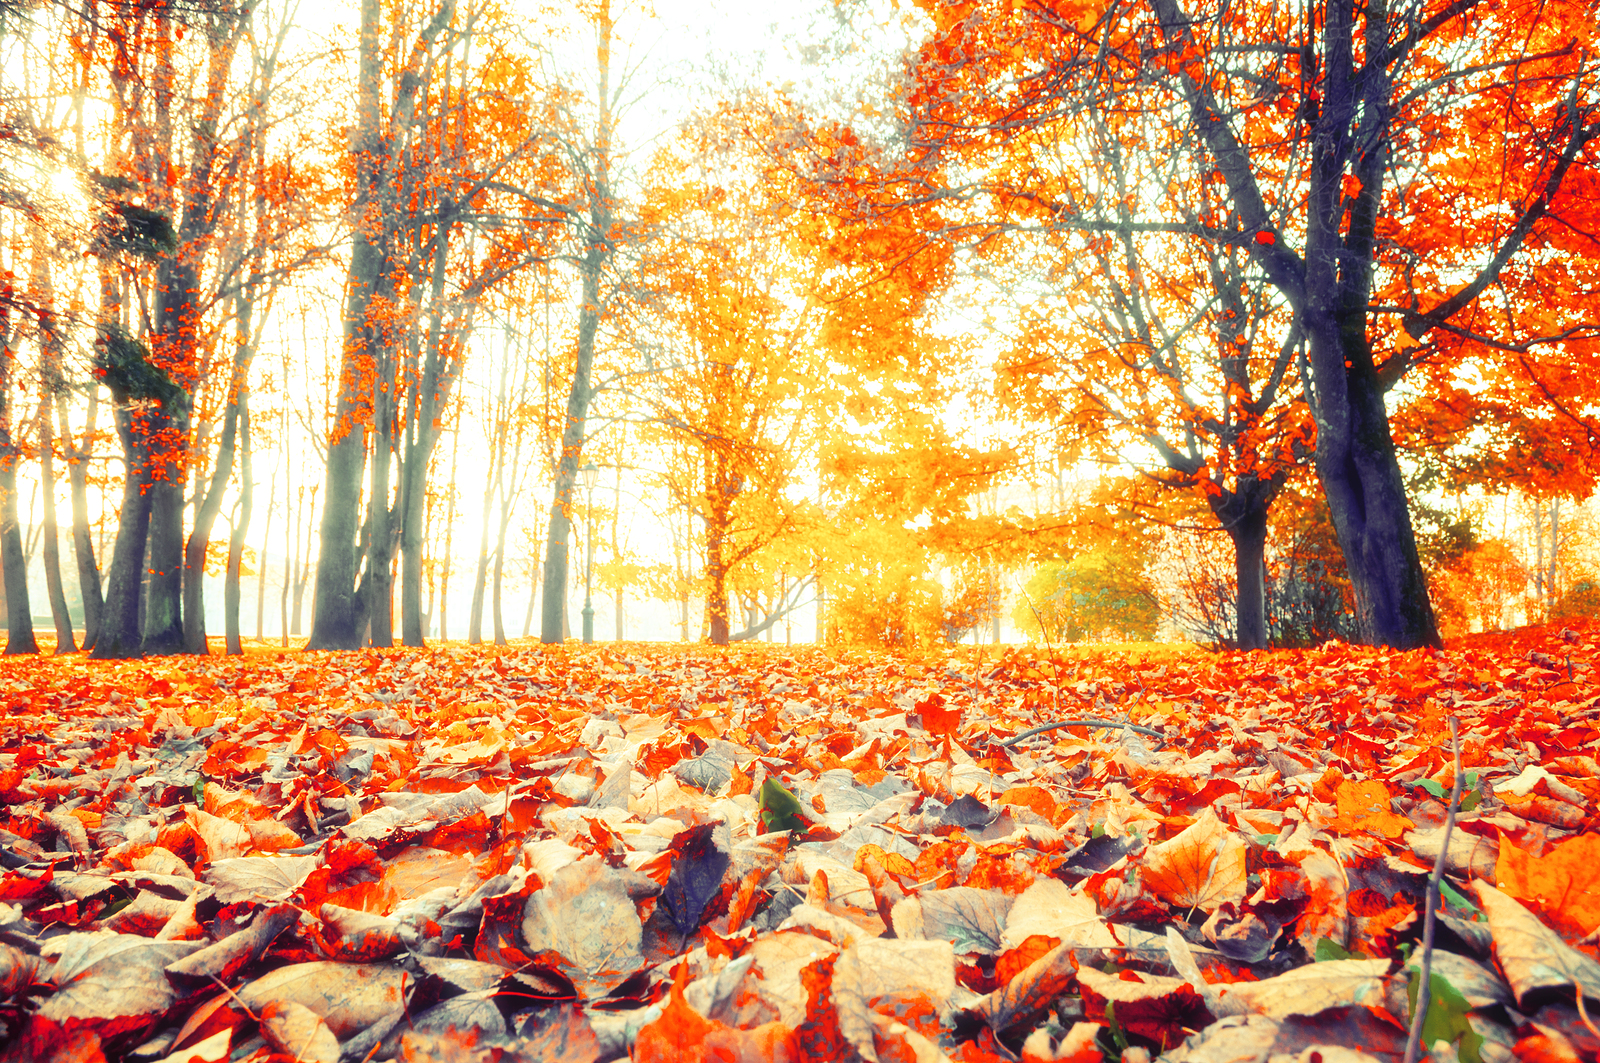 Autumn woods and forest floor covered in leaves